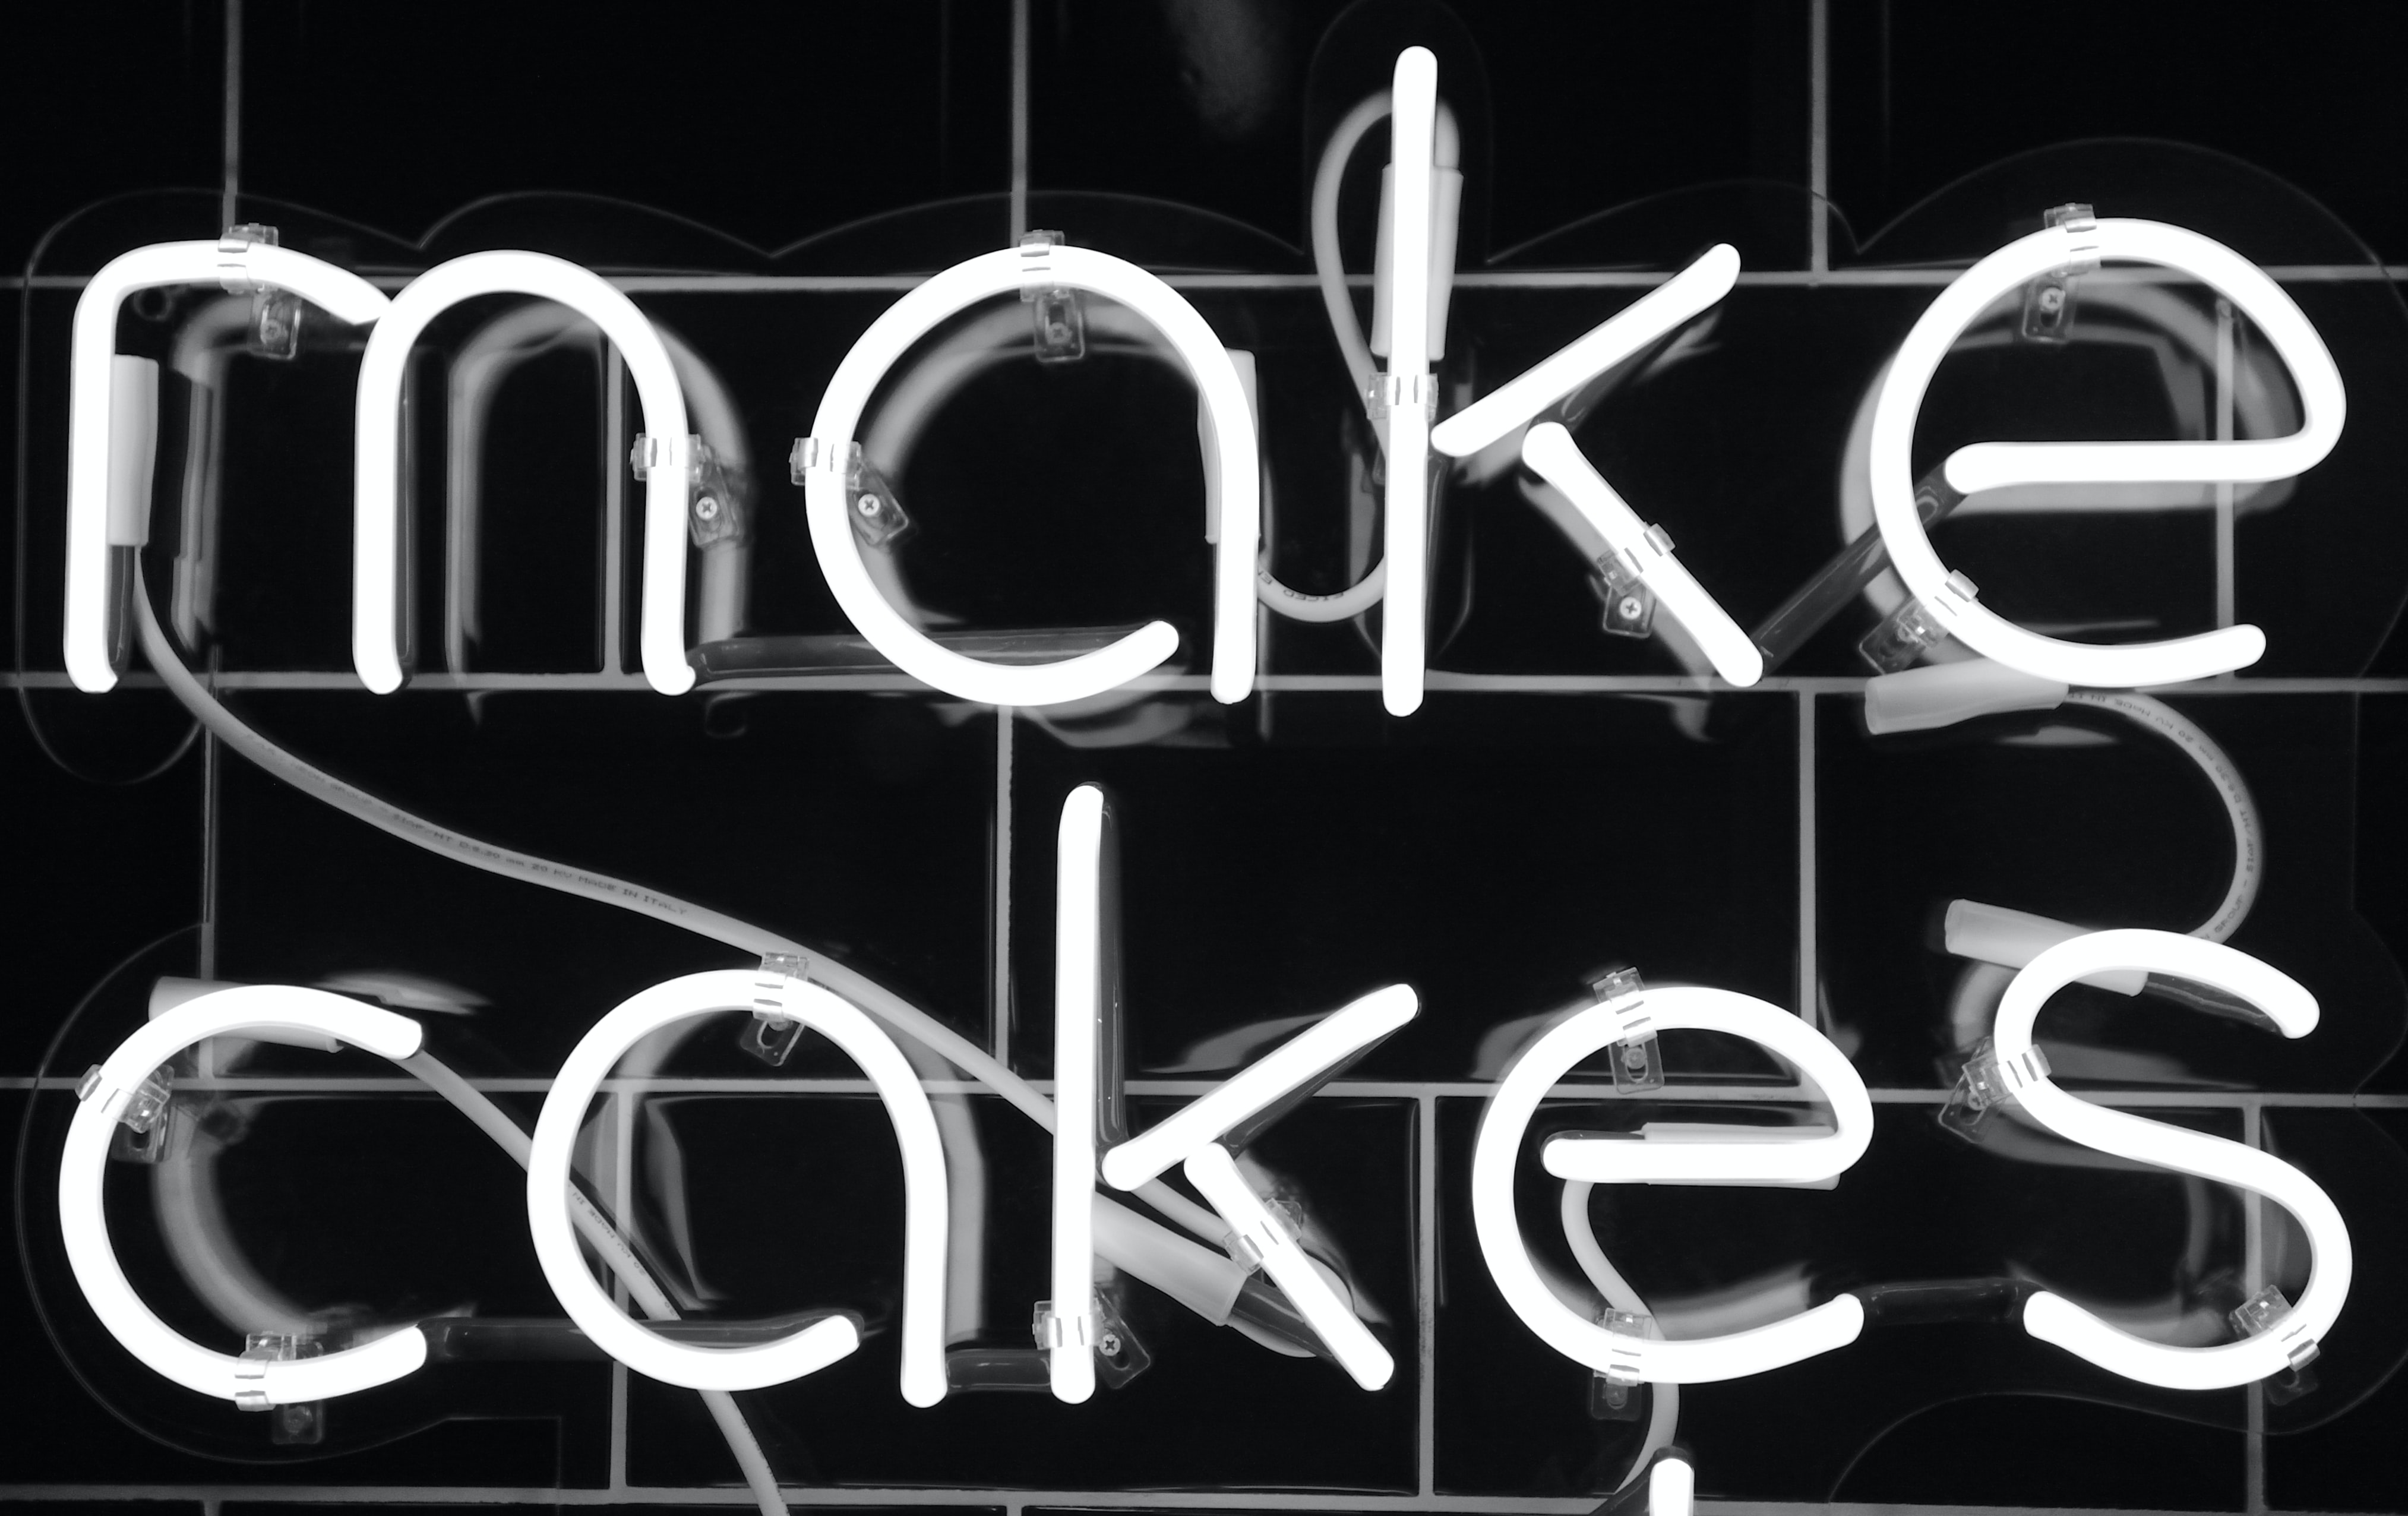 grayscale photography of make cakes neon signage